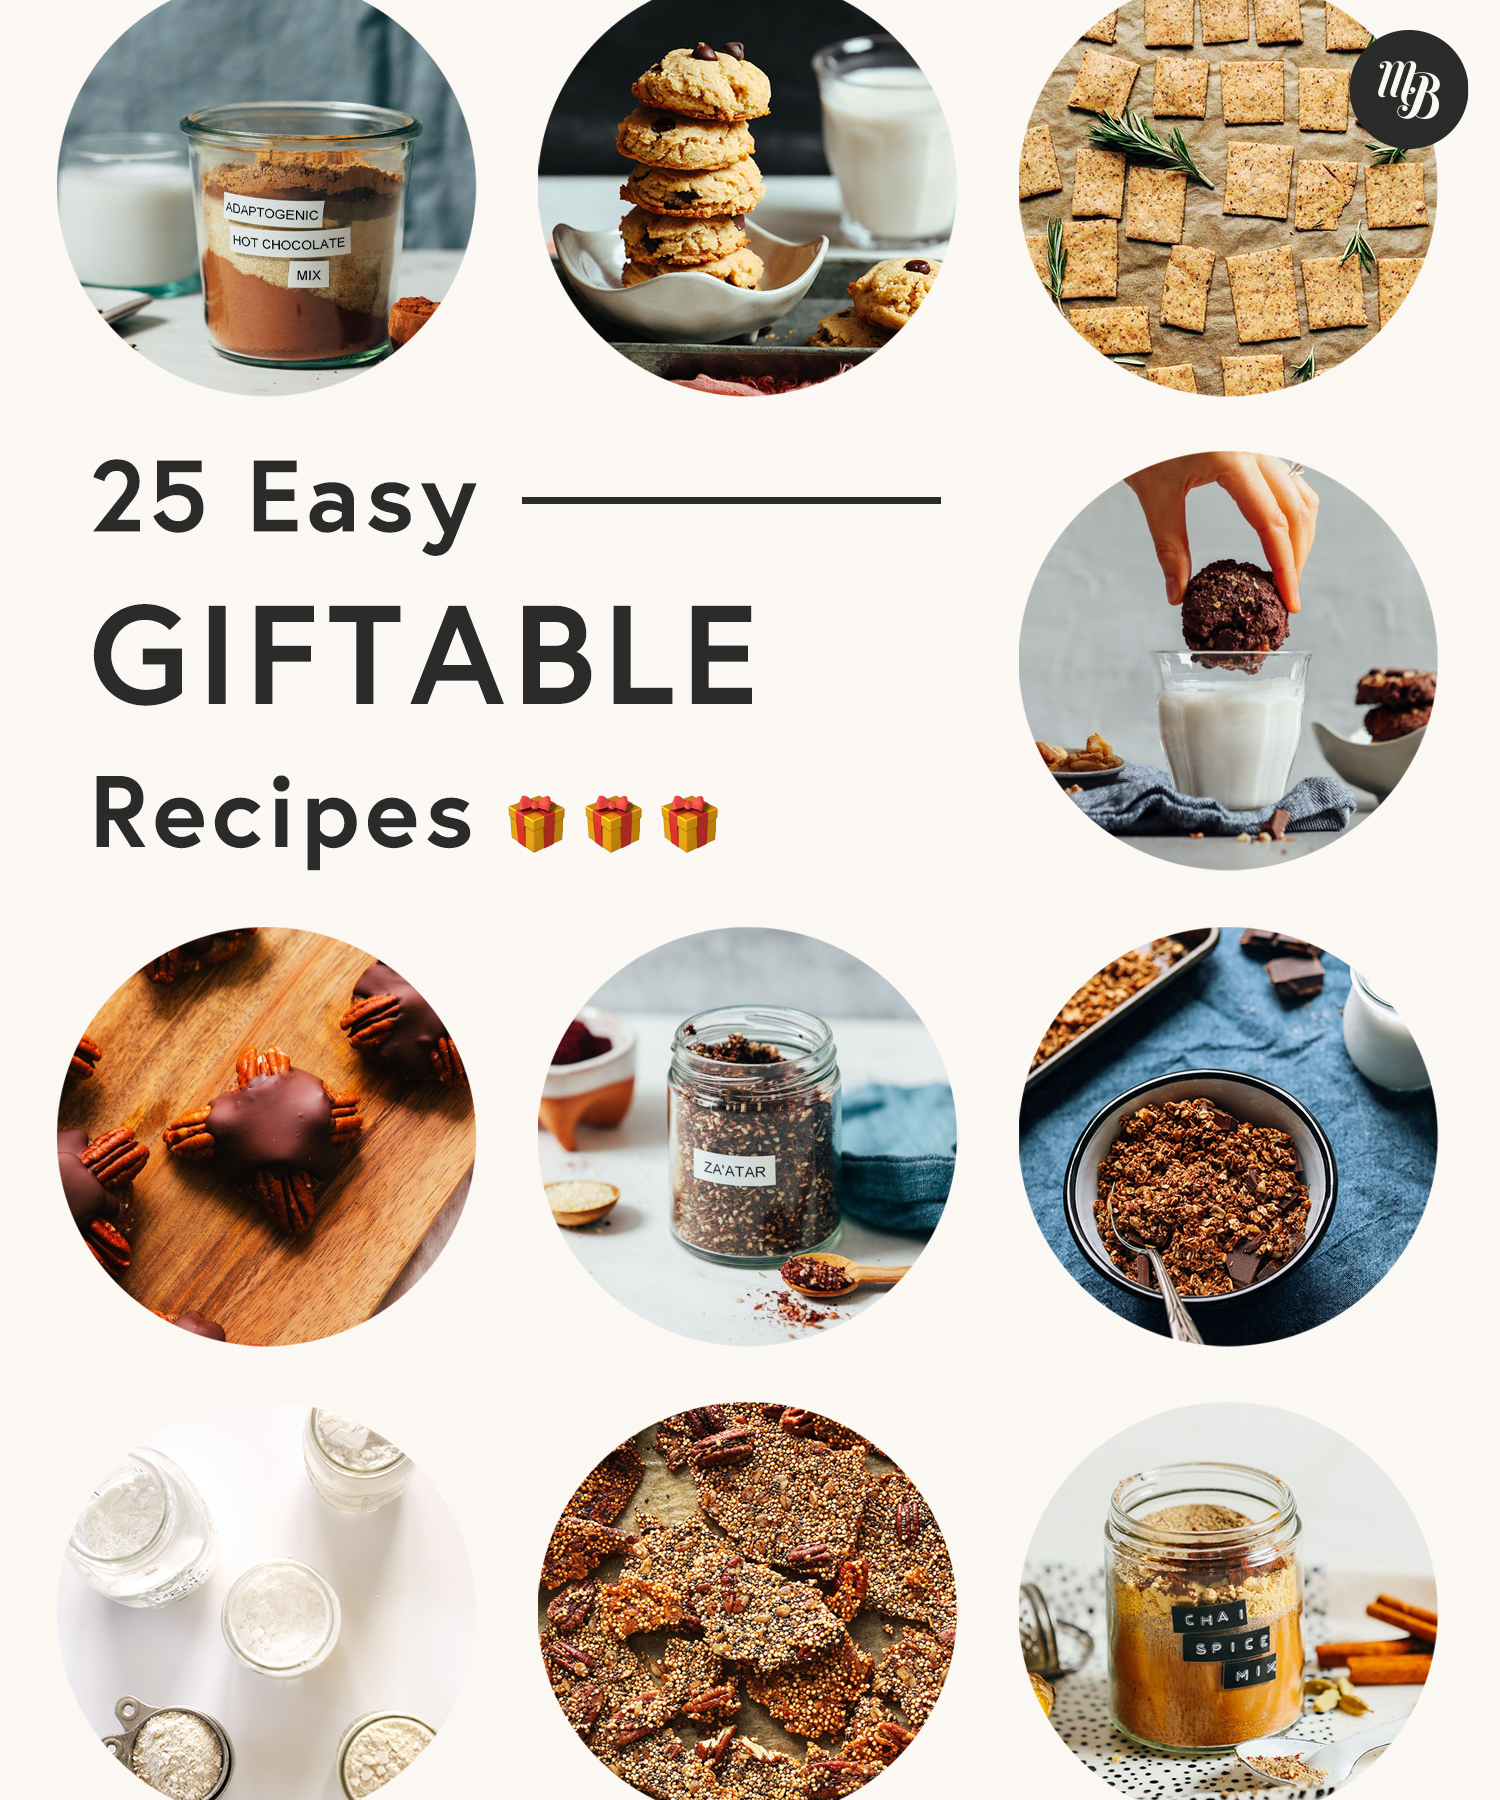 Assortment of cookies, granola, spice mixes and other easy giftable recipes